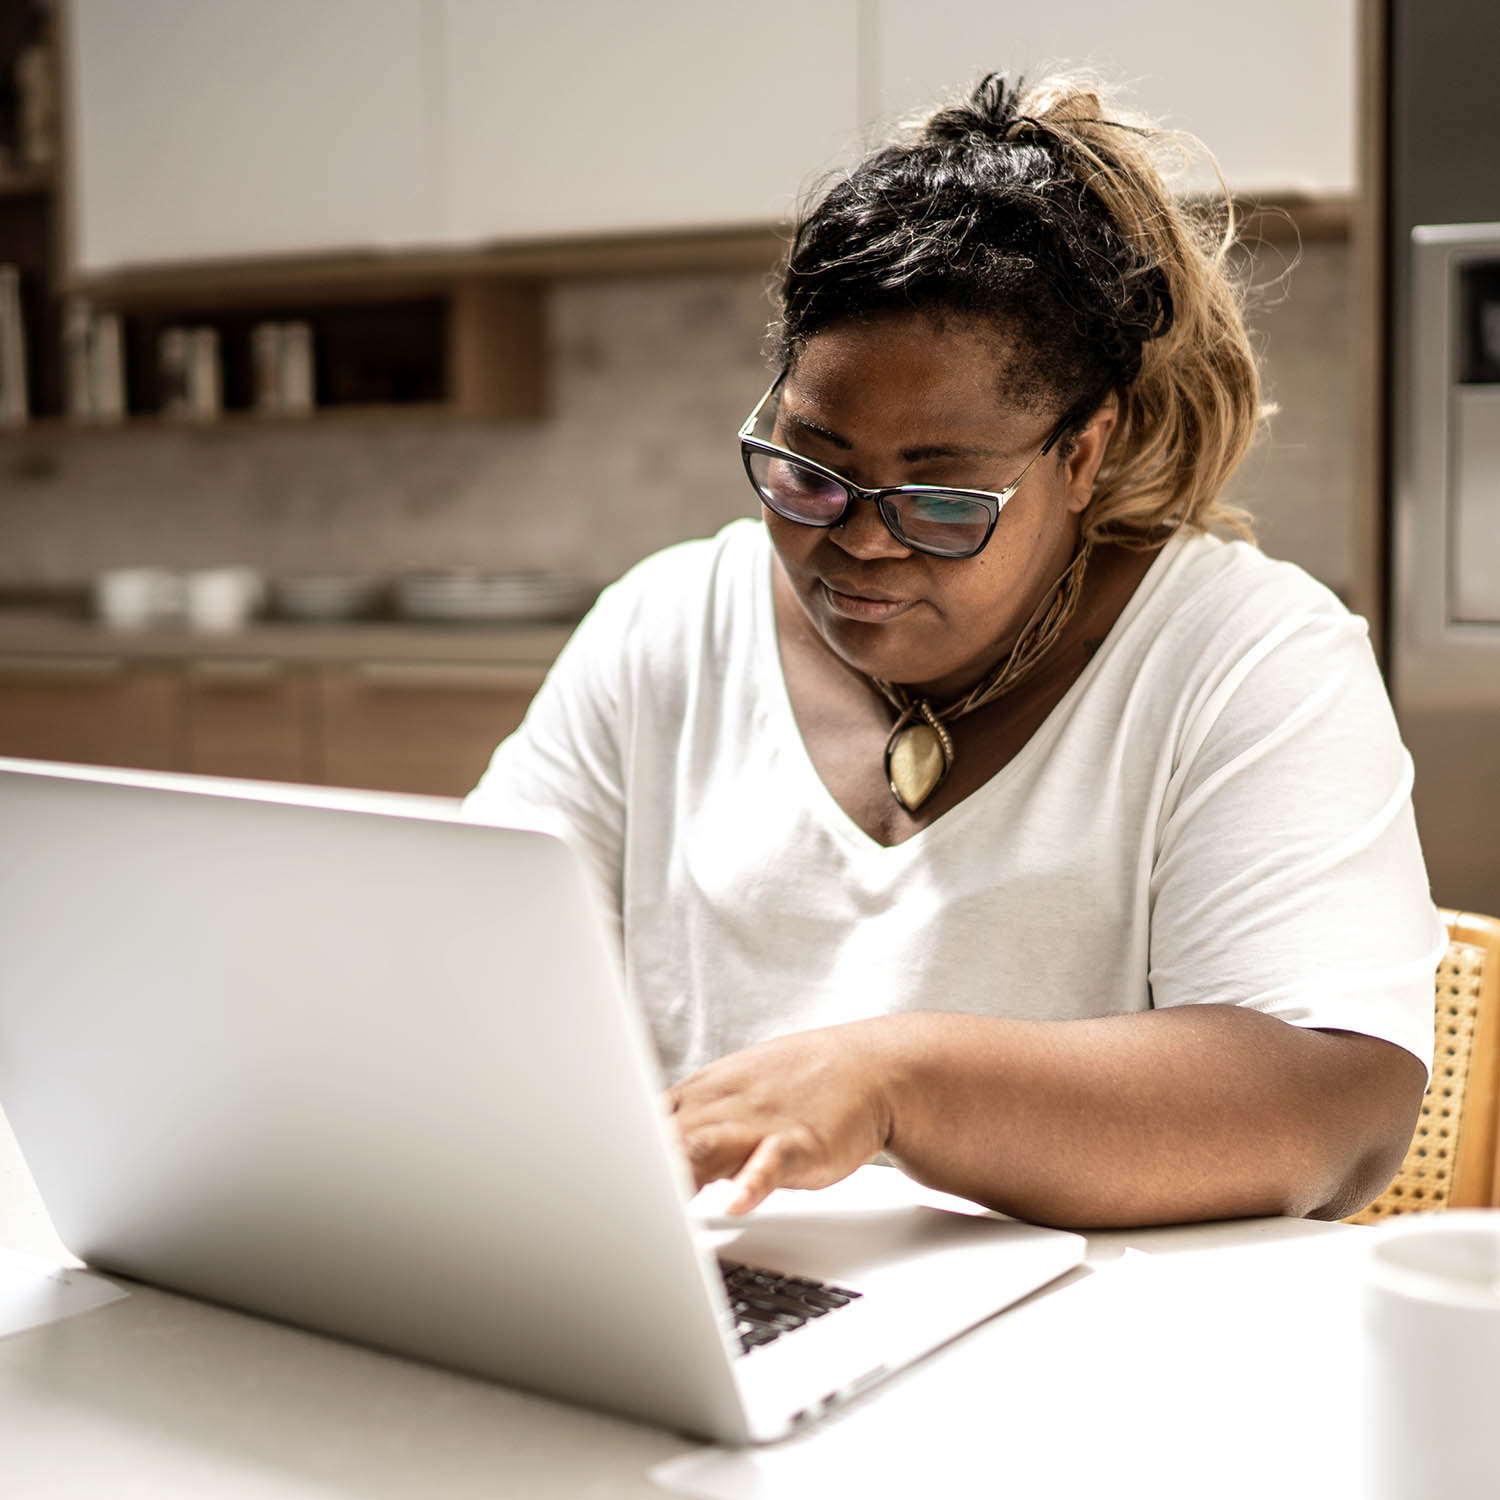 Mature woman using laptop working from home